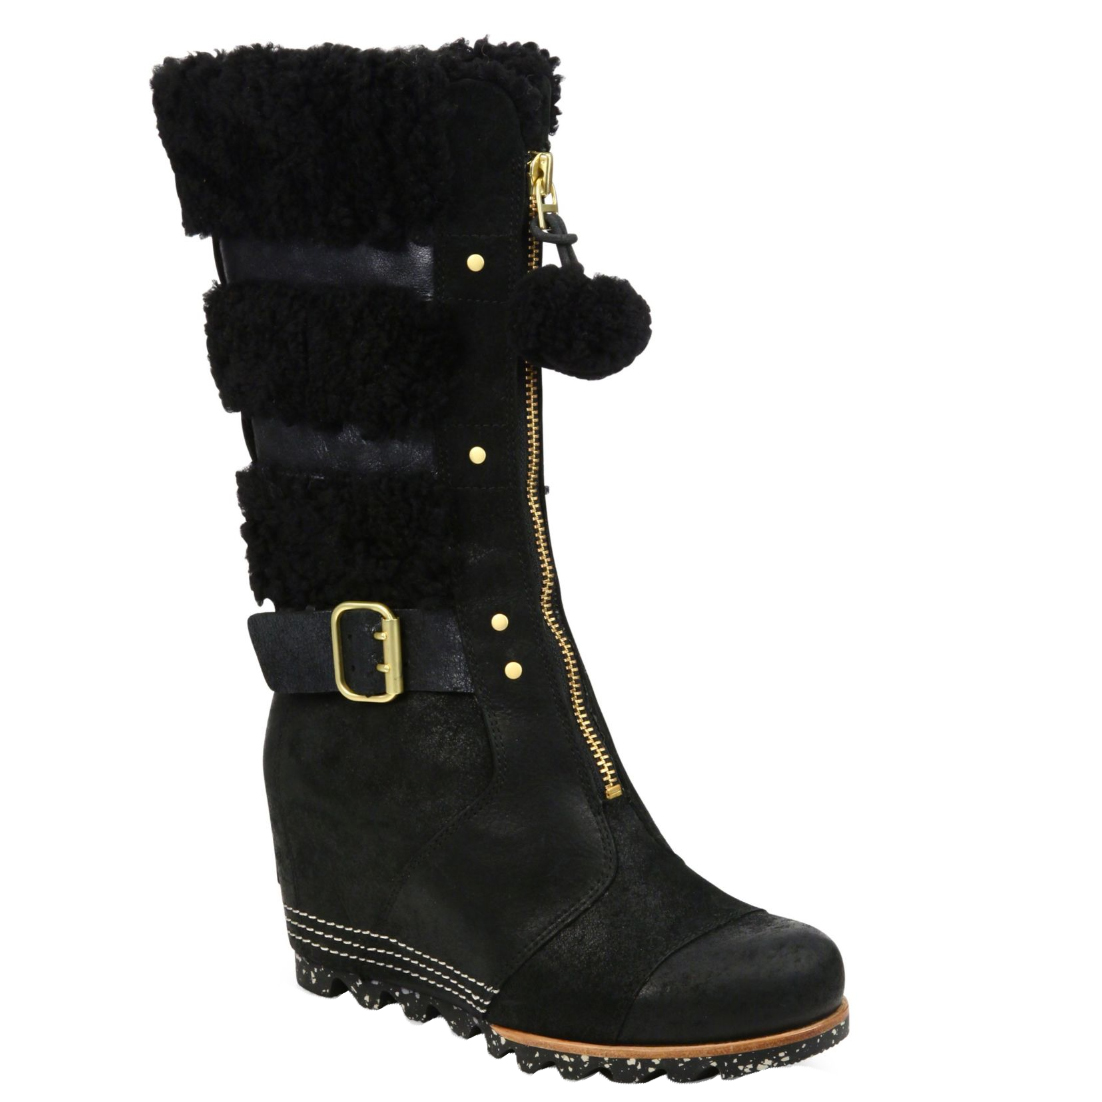 Sorel Wedge Boots